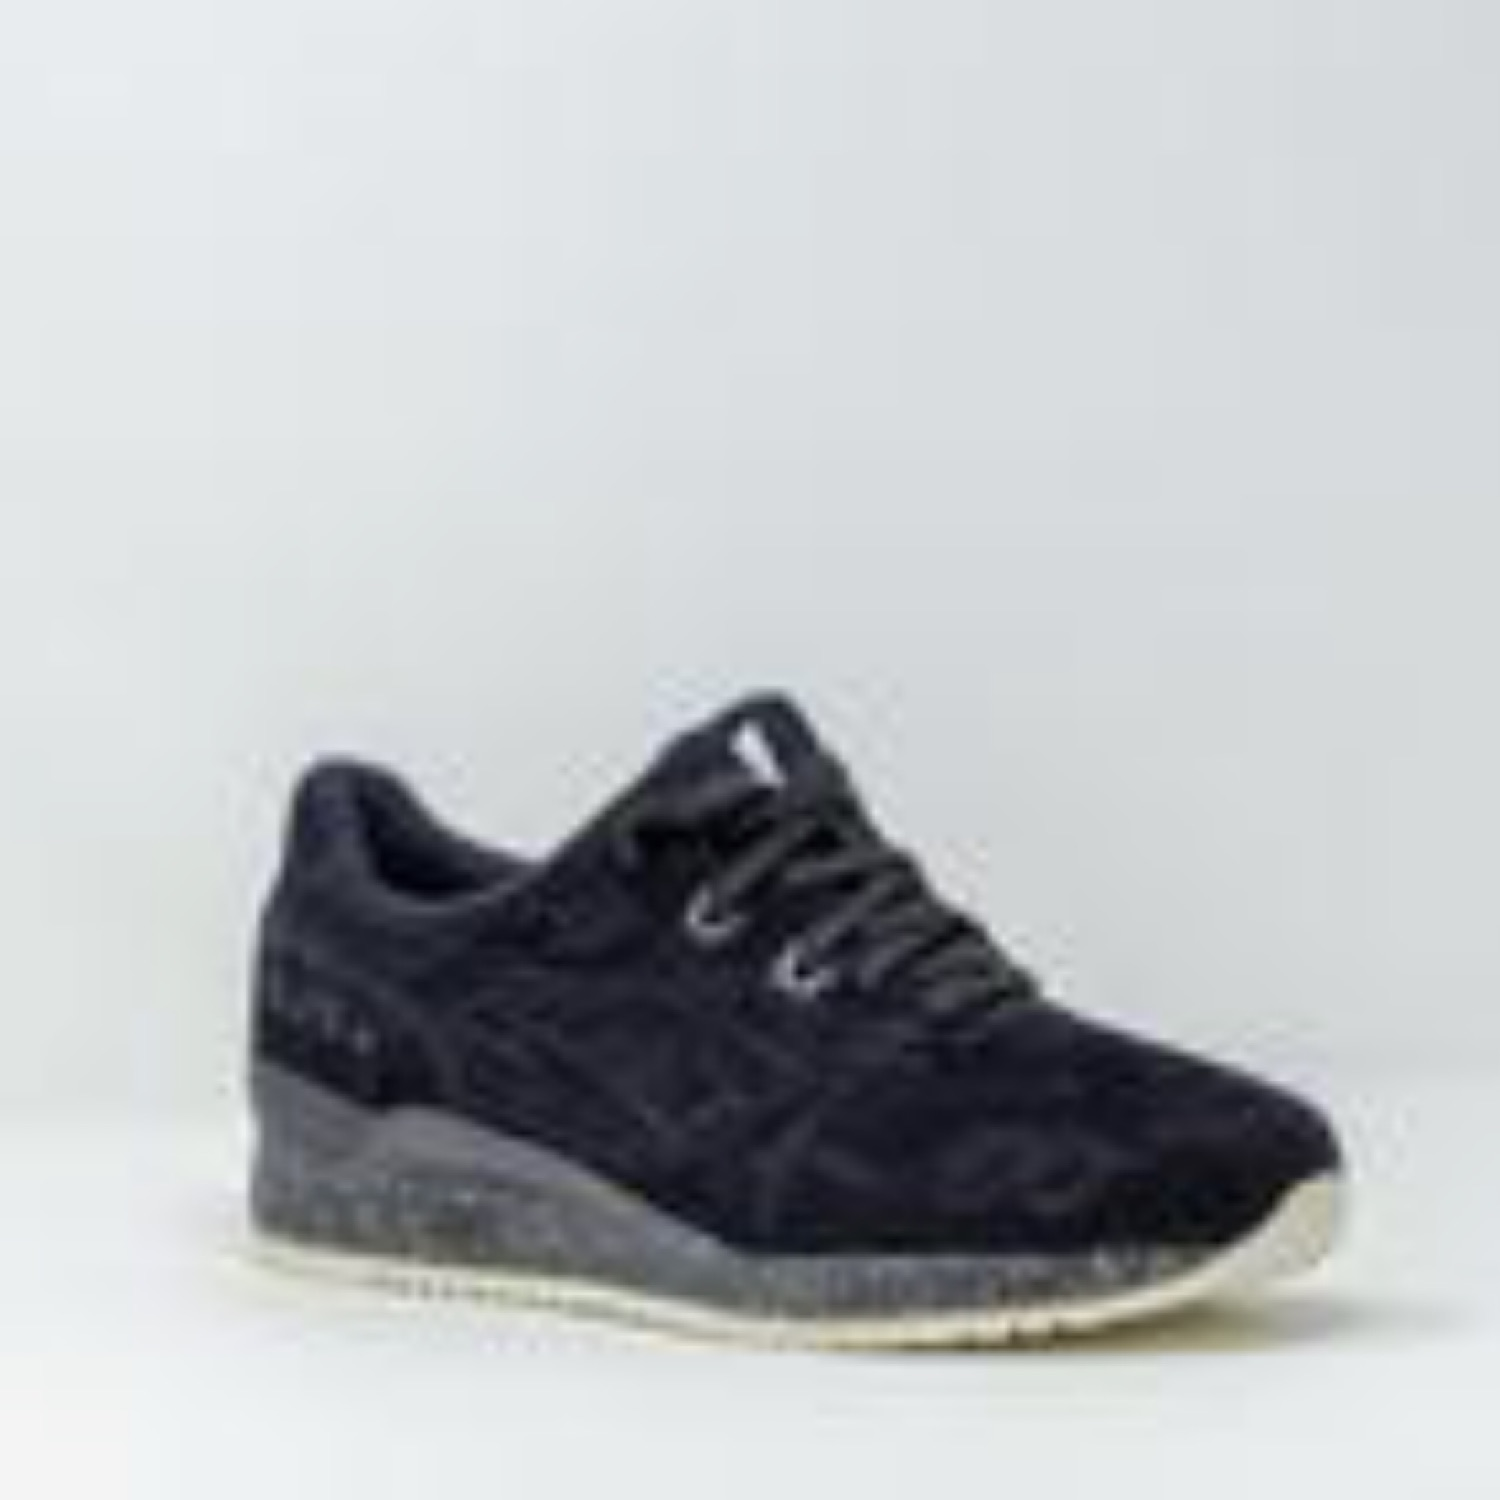 purchase cheap c82e7 2352d Asics Gel Lyte Iii Reigning Champs Black